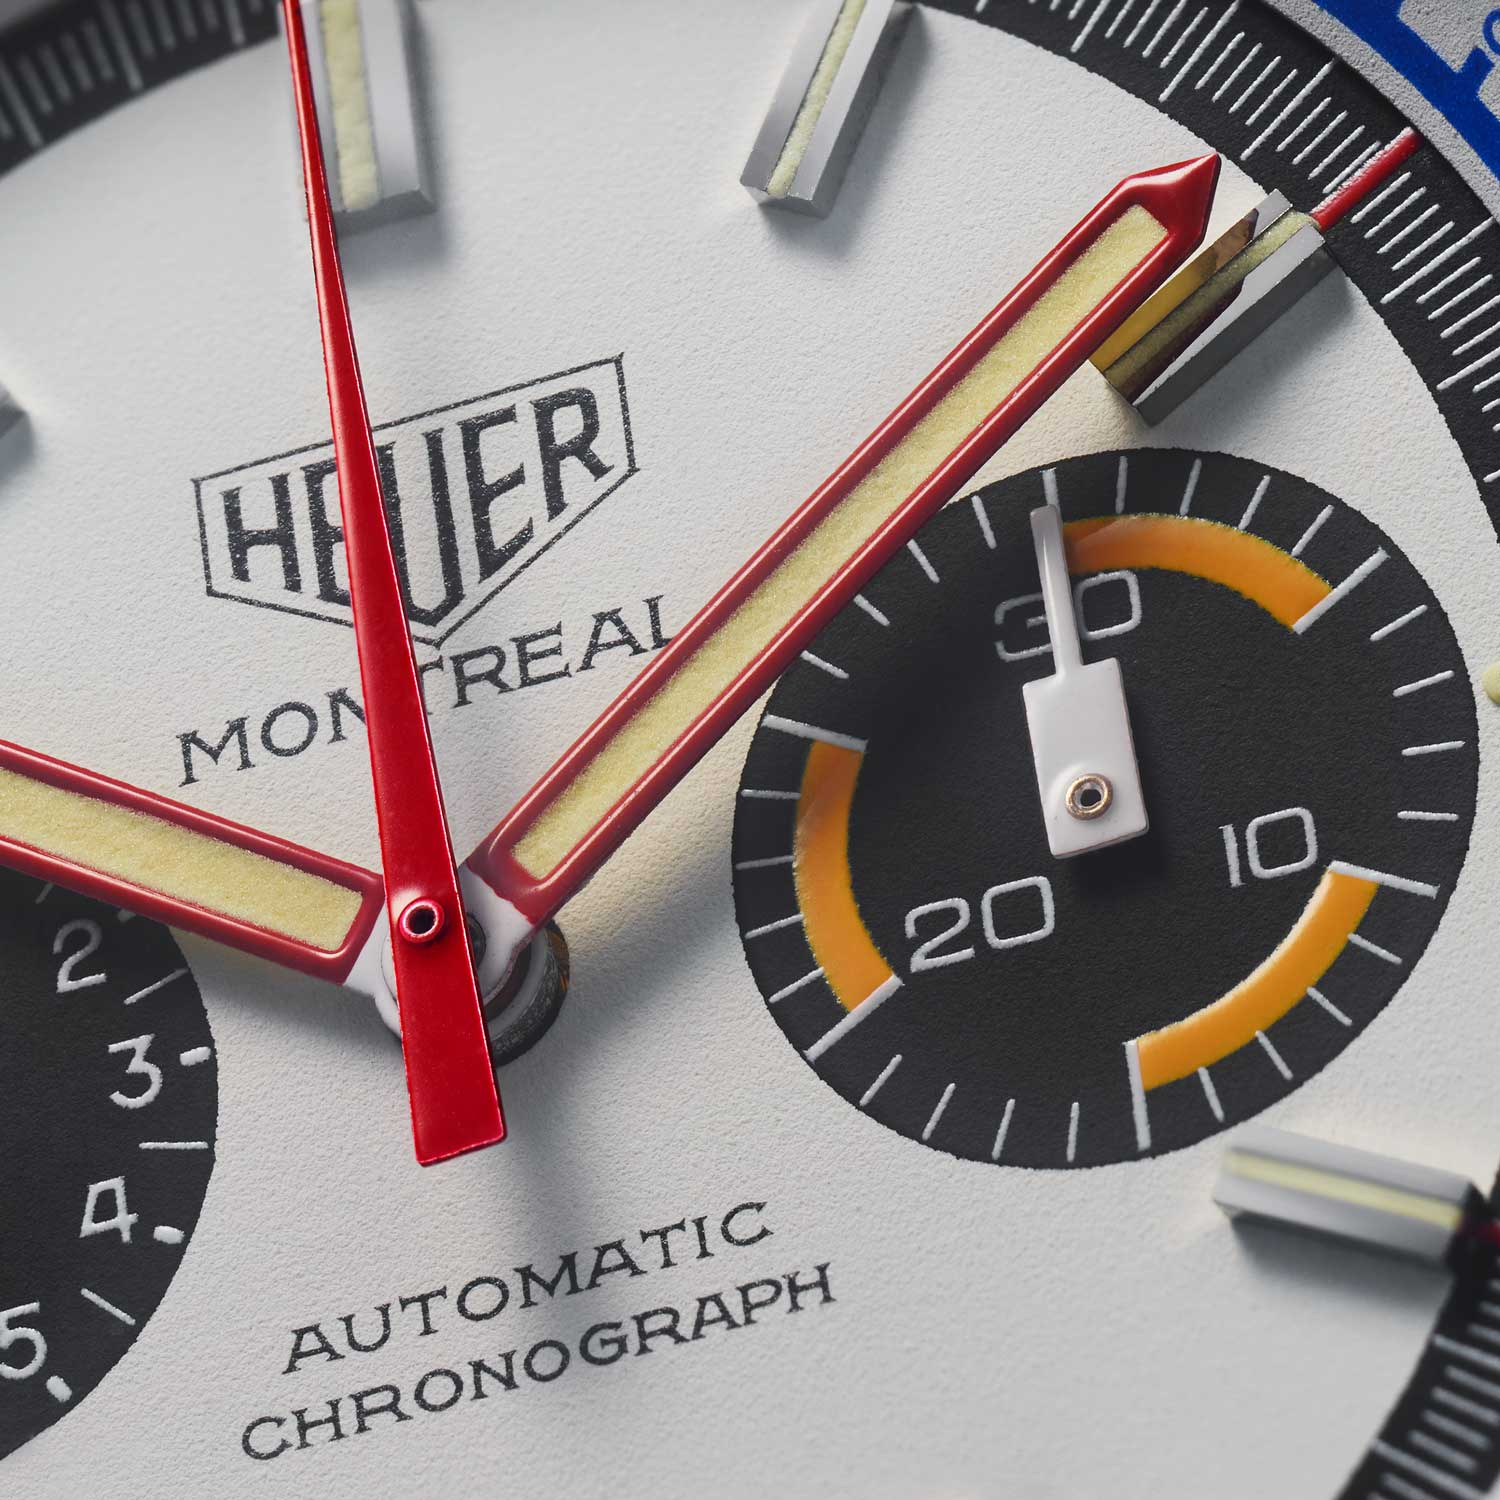 1972 White Heuer Montreal, reference 110.503W